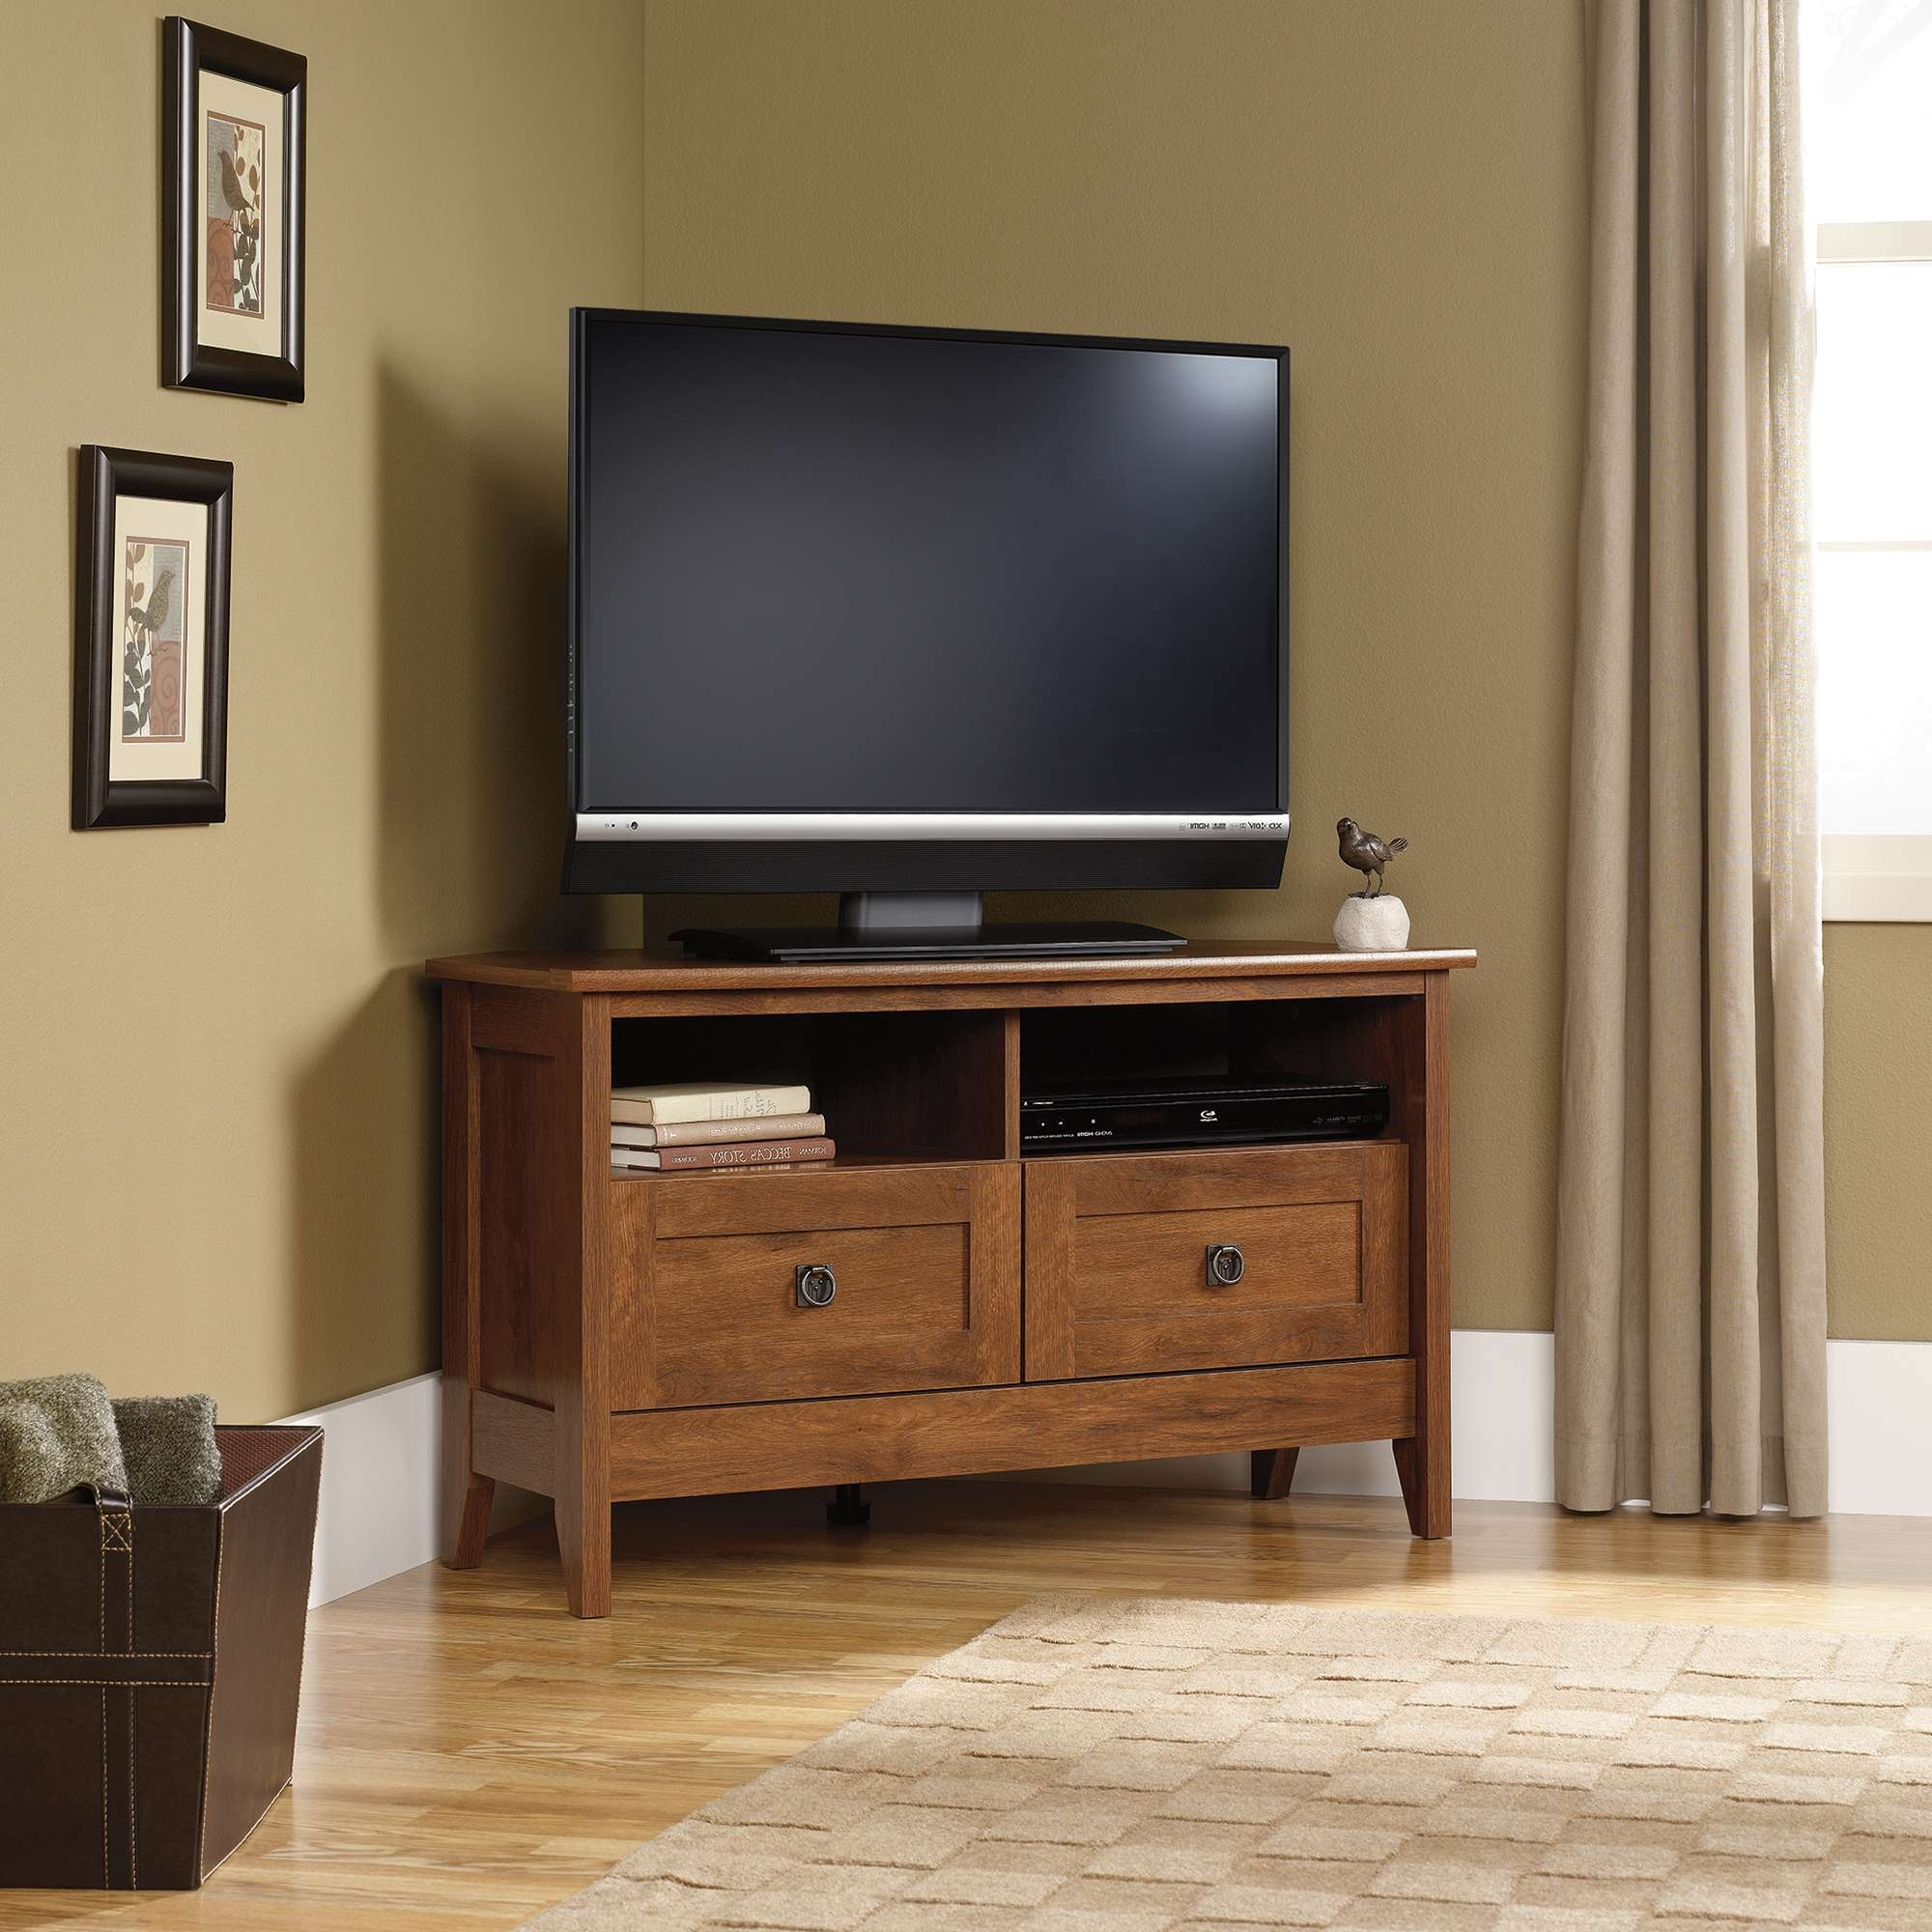 Sauder Select | Corner Tv Stand | 410627 | Sauder In Small Corner Tv Cabinets (View 18 of 20)